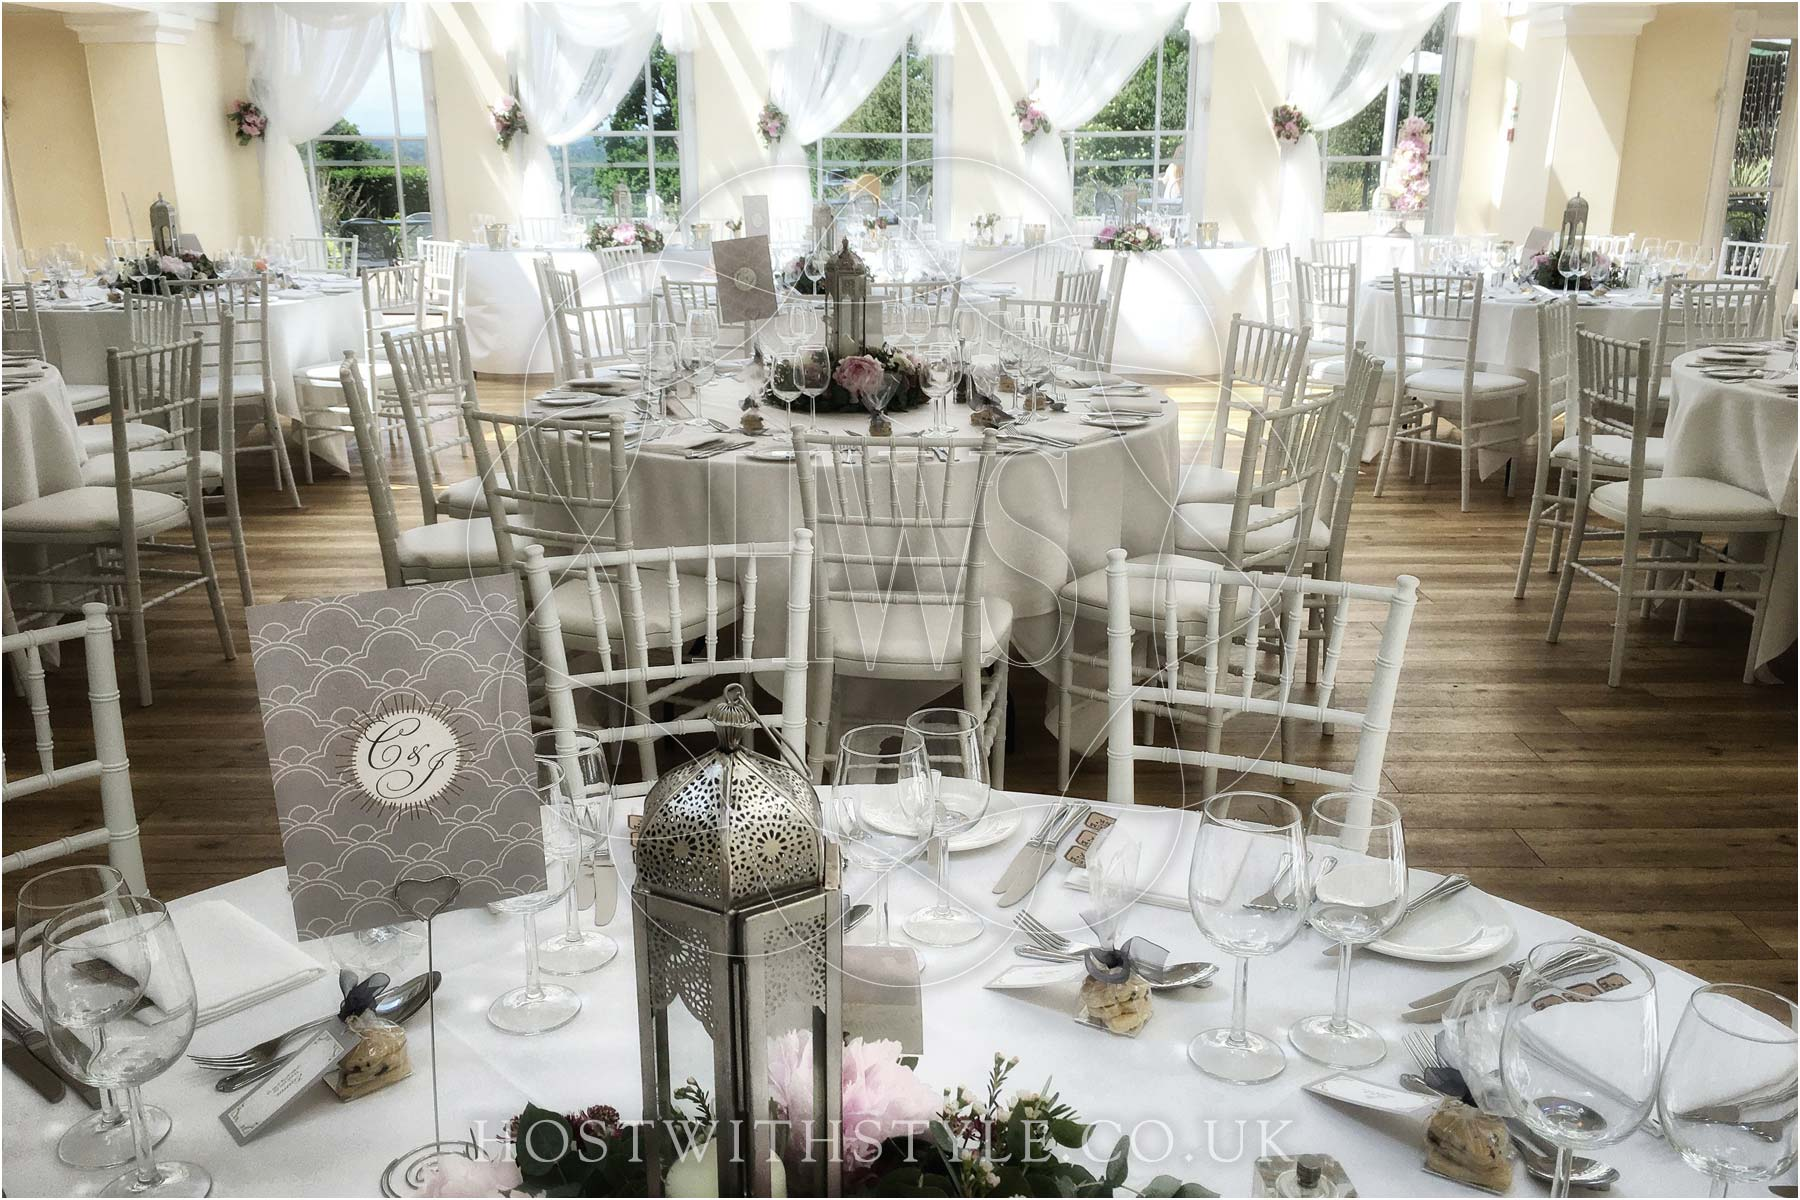 Host with Style chair covers and chiavari chair rental